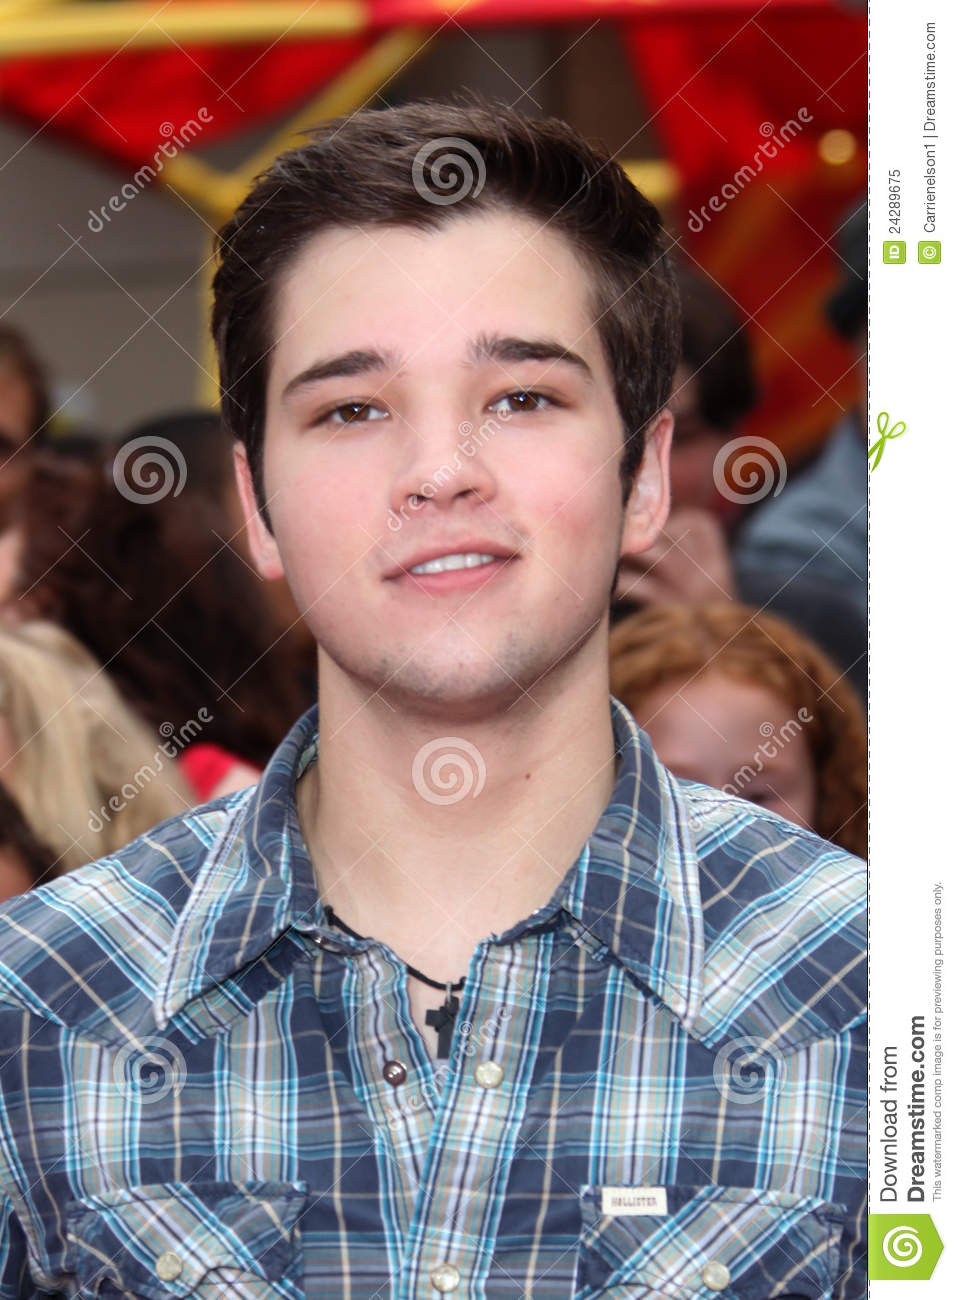 nathan kress audition icarlynathan kress 2016, nathan kress 2017, nathan kress wife, nathan kress instagram, nathan kress height, nathan kress wiki, nathan kress vk, nathan kress now, nathan kress filme, nathan kress girlfriend, nathan kress biceps, nathan kress news, nathan kress wikipedia, nathan kress wedding, nathan kress audition icarly, nathan kress age, nathan kress married, nathan kress miranda cosgrove